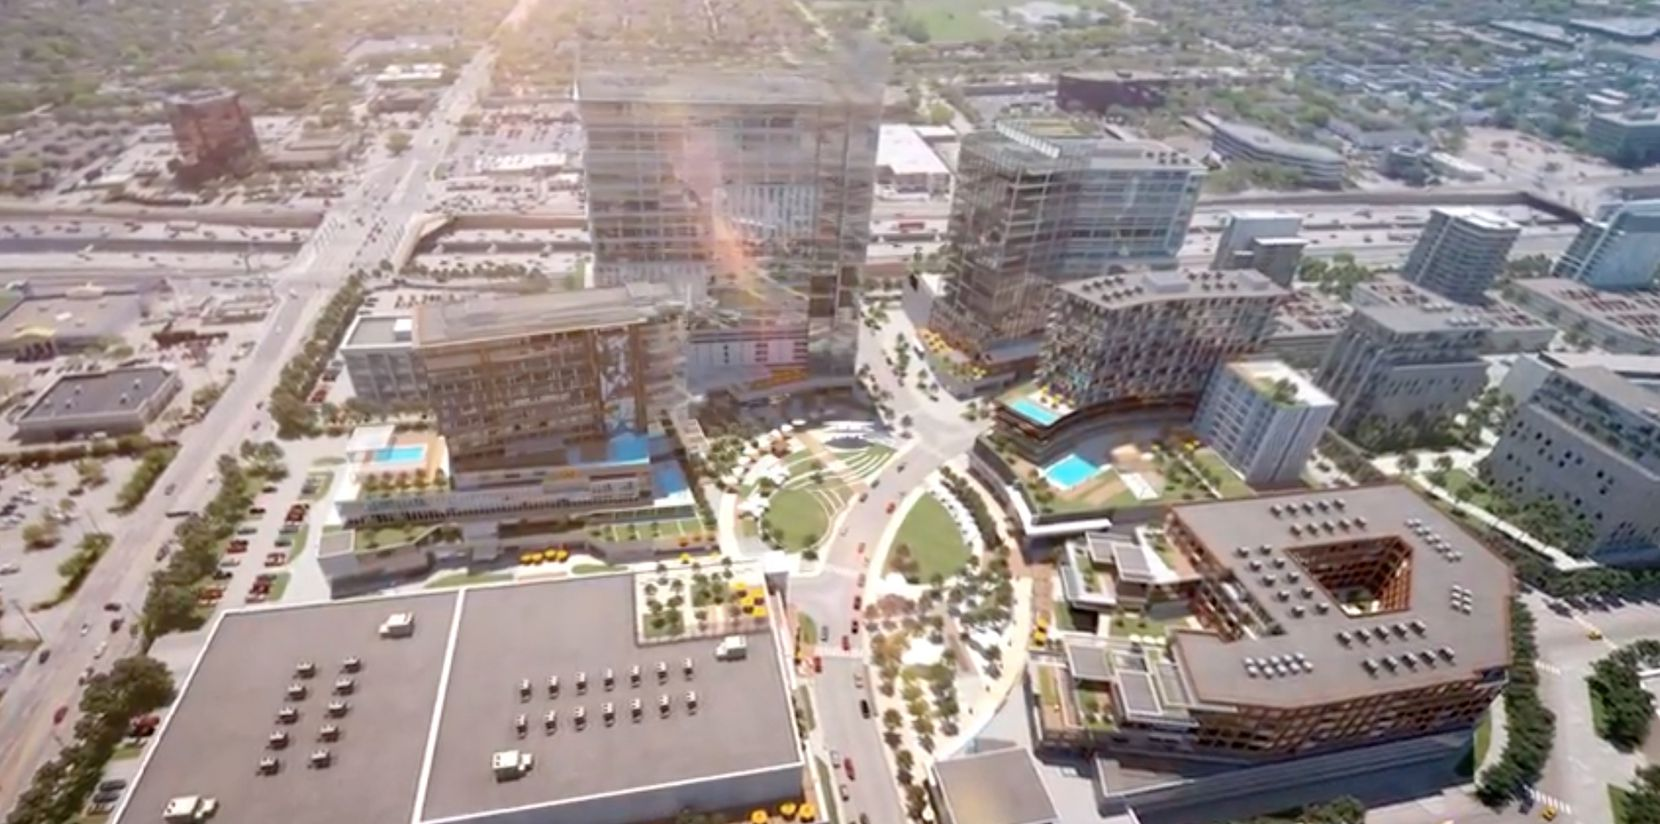 The mixed-use development would have a combination of high-rise and mid-rise buildings.